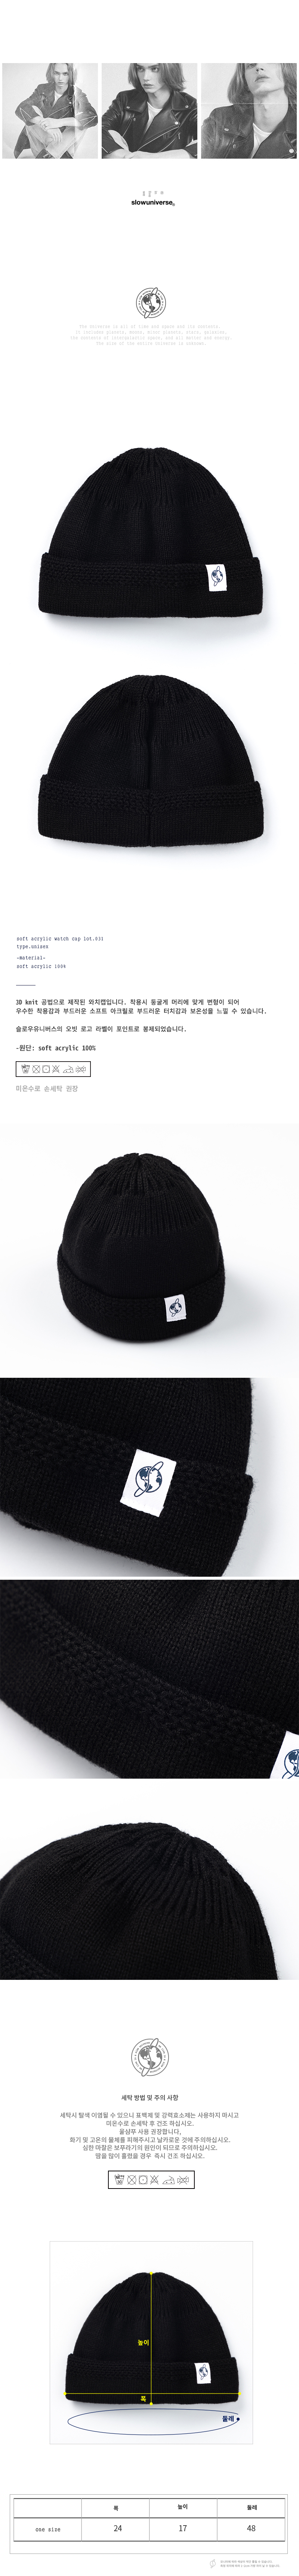 SUABN001BLK.jpg